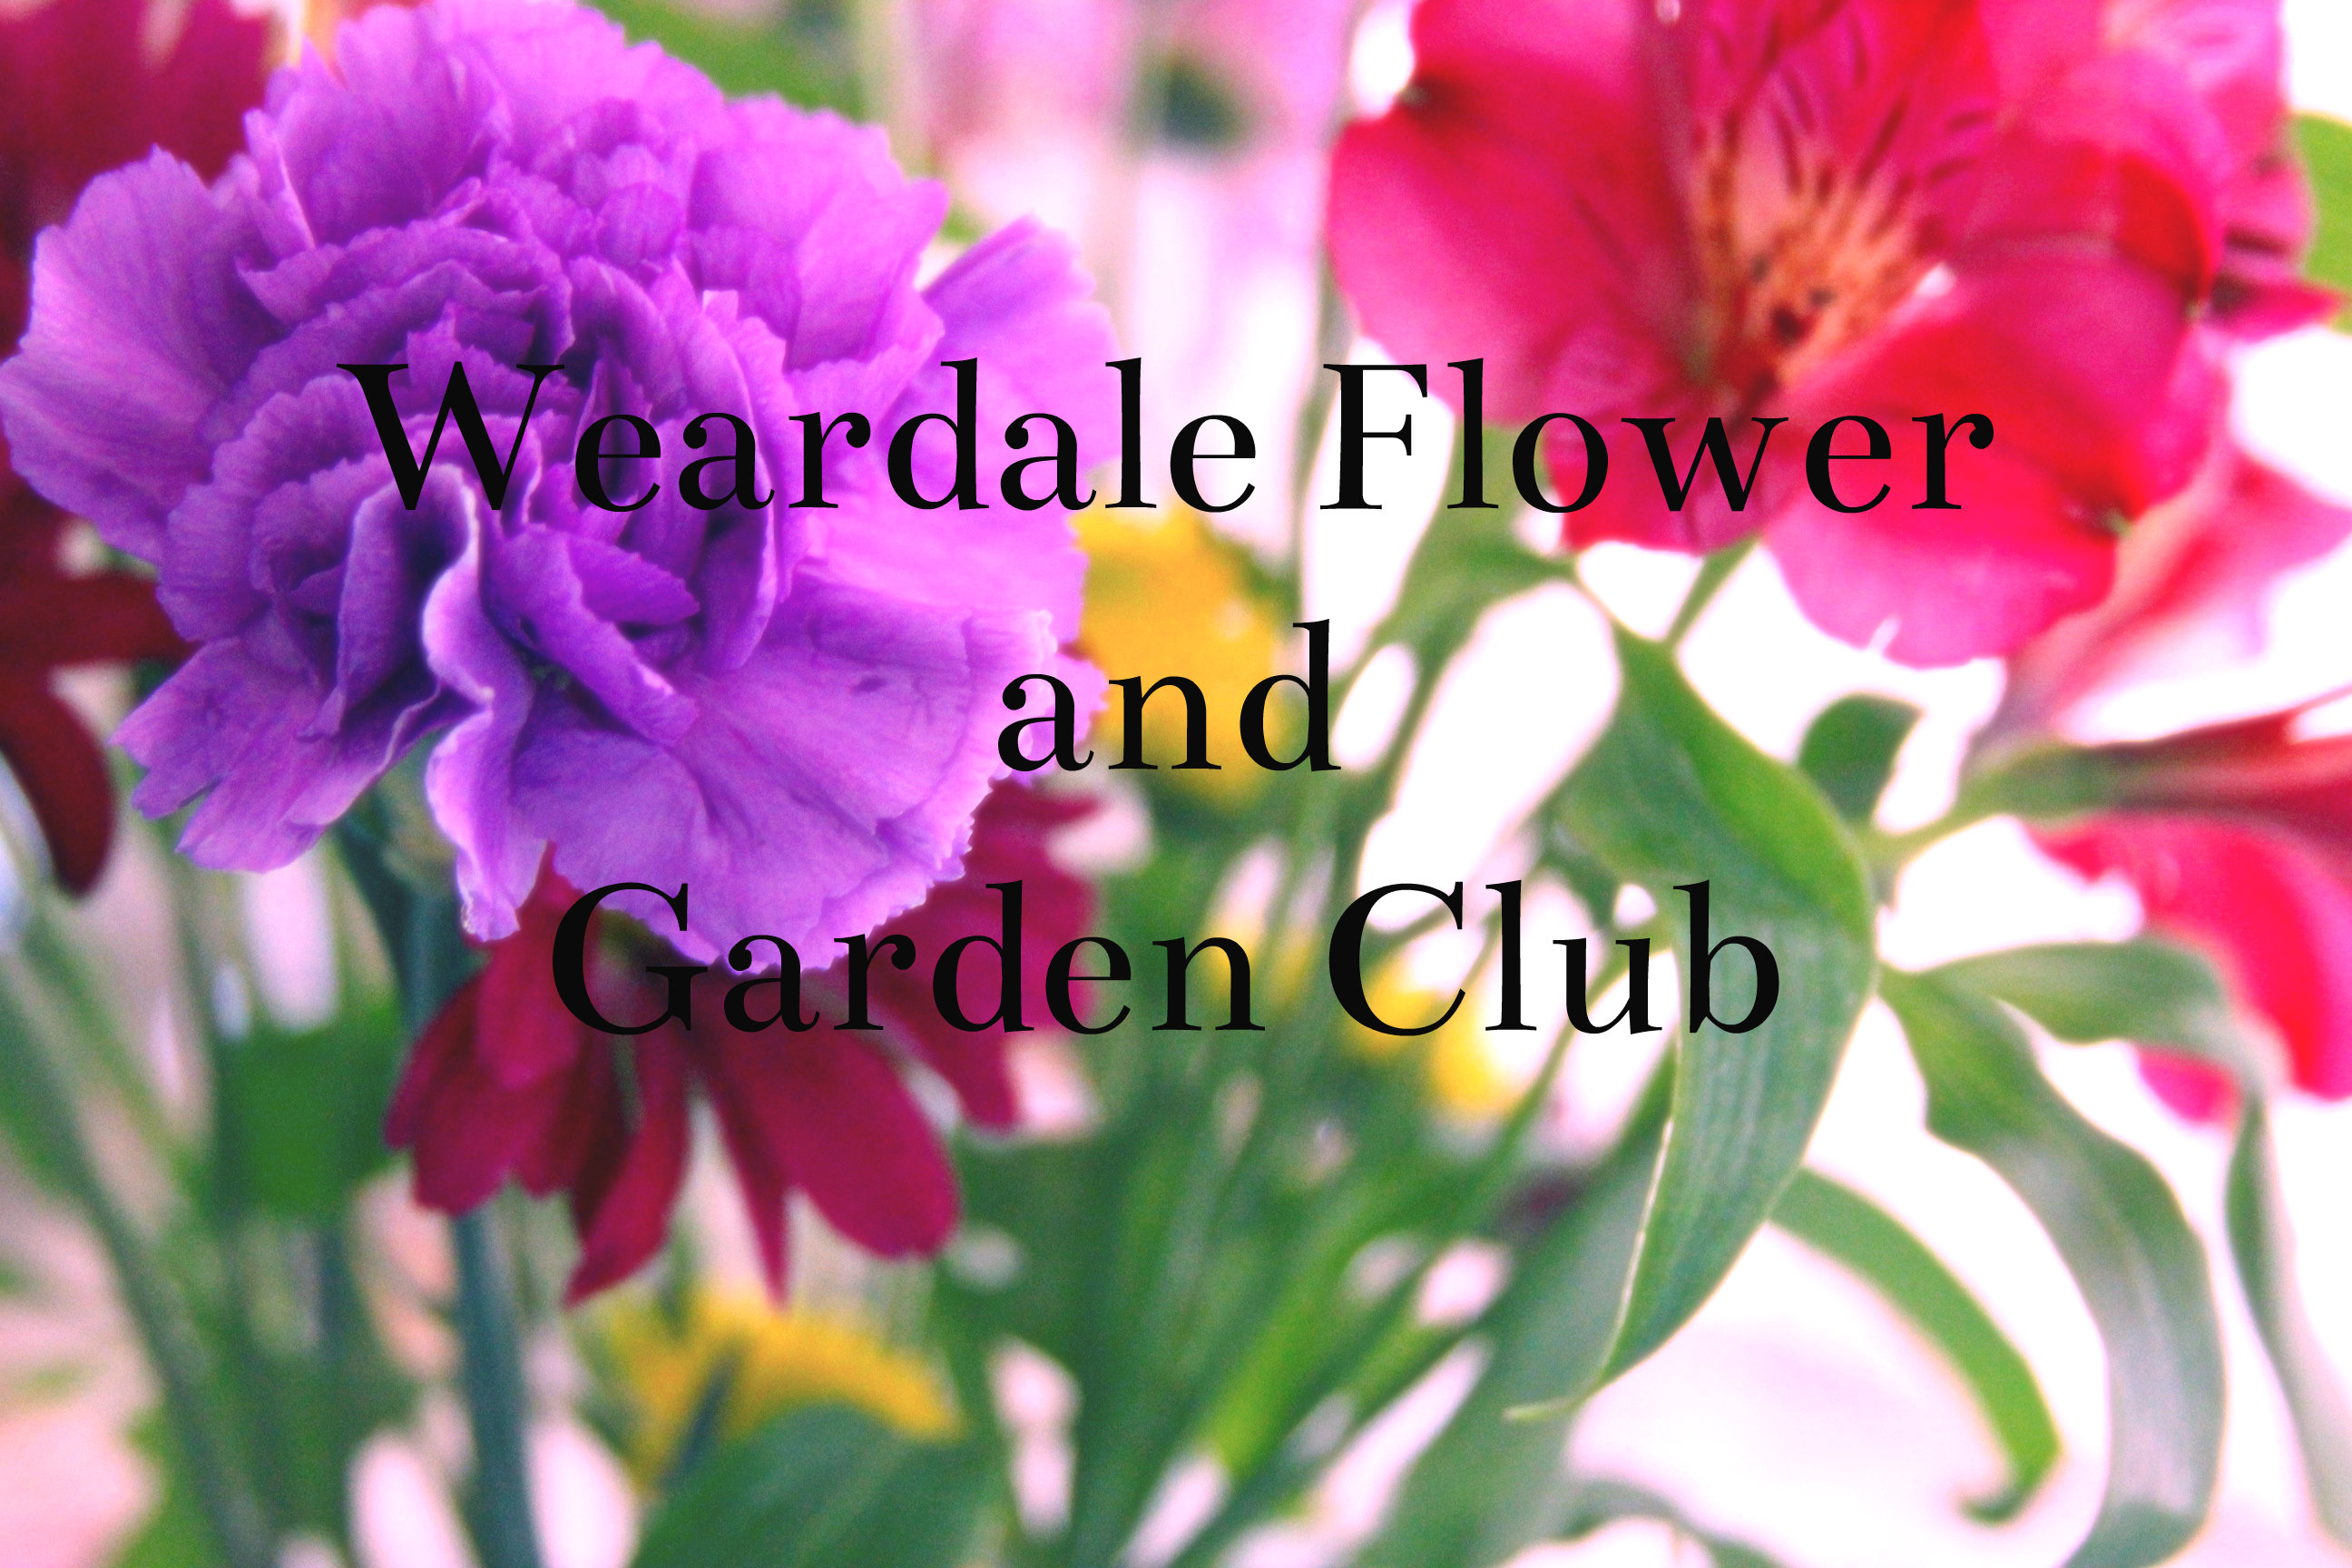 Weardale Flower and Garden Club